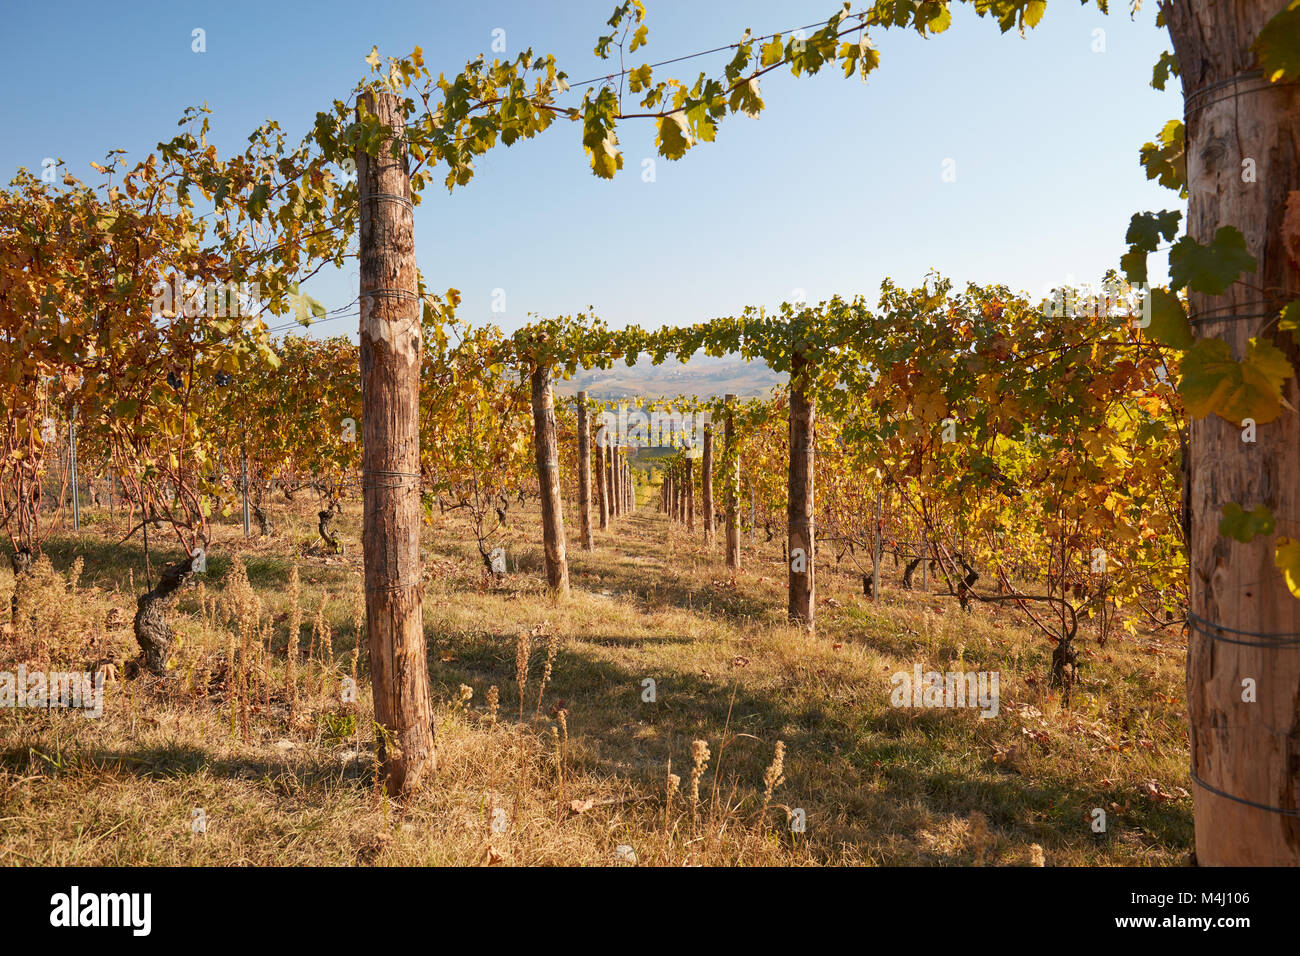 Vineyard, wide angle view in autumn with yellow leaves in a sunny day, vanishing point - Stock Image